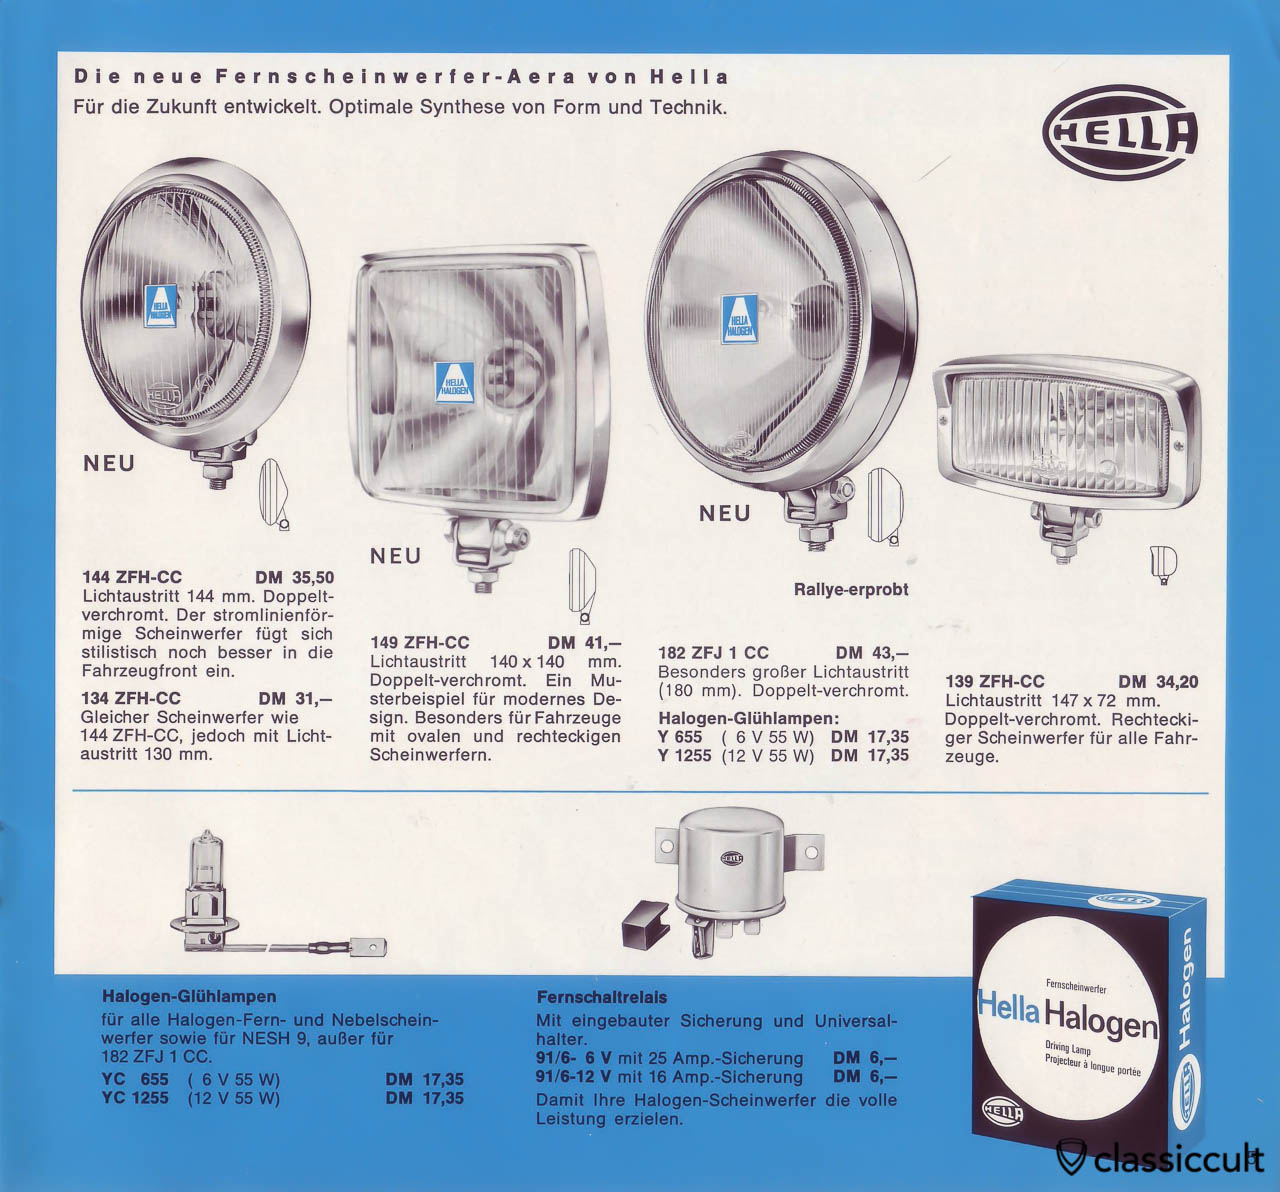 Classic Hella H3 Halogen fog lights: Hella 144 (for VW Beetle and VW Bus), Hella 149, Hella 182 (Rally approved, for the Rally Bug), Hella 139 (for Porsche). The H3 Halogen fog lights can be used with 6V and 12V.